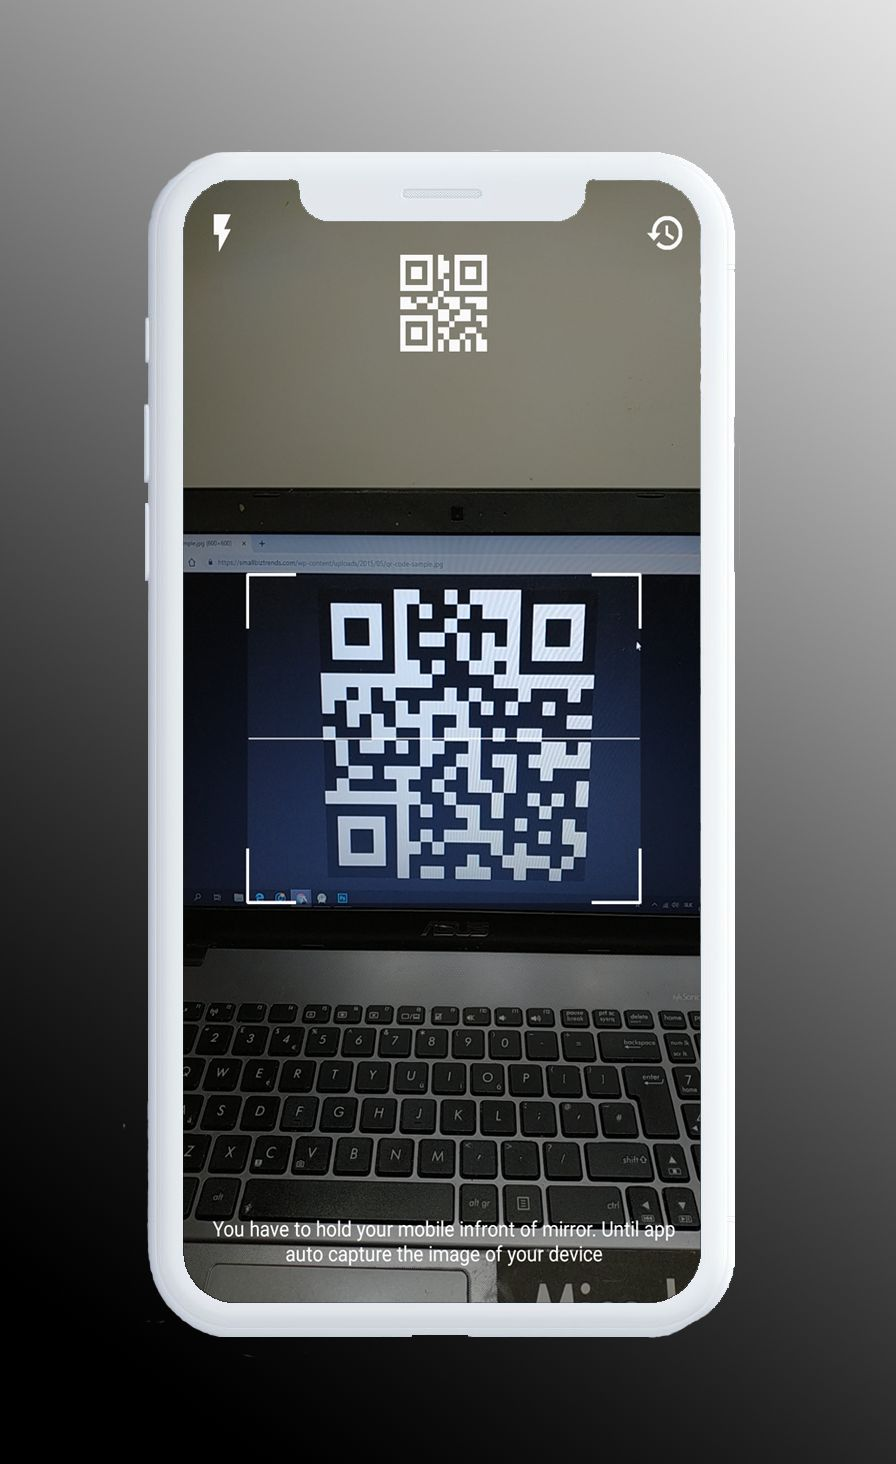 QR Scanner - Simple And Minimal Android App Screenshot 2